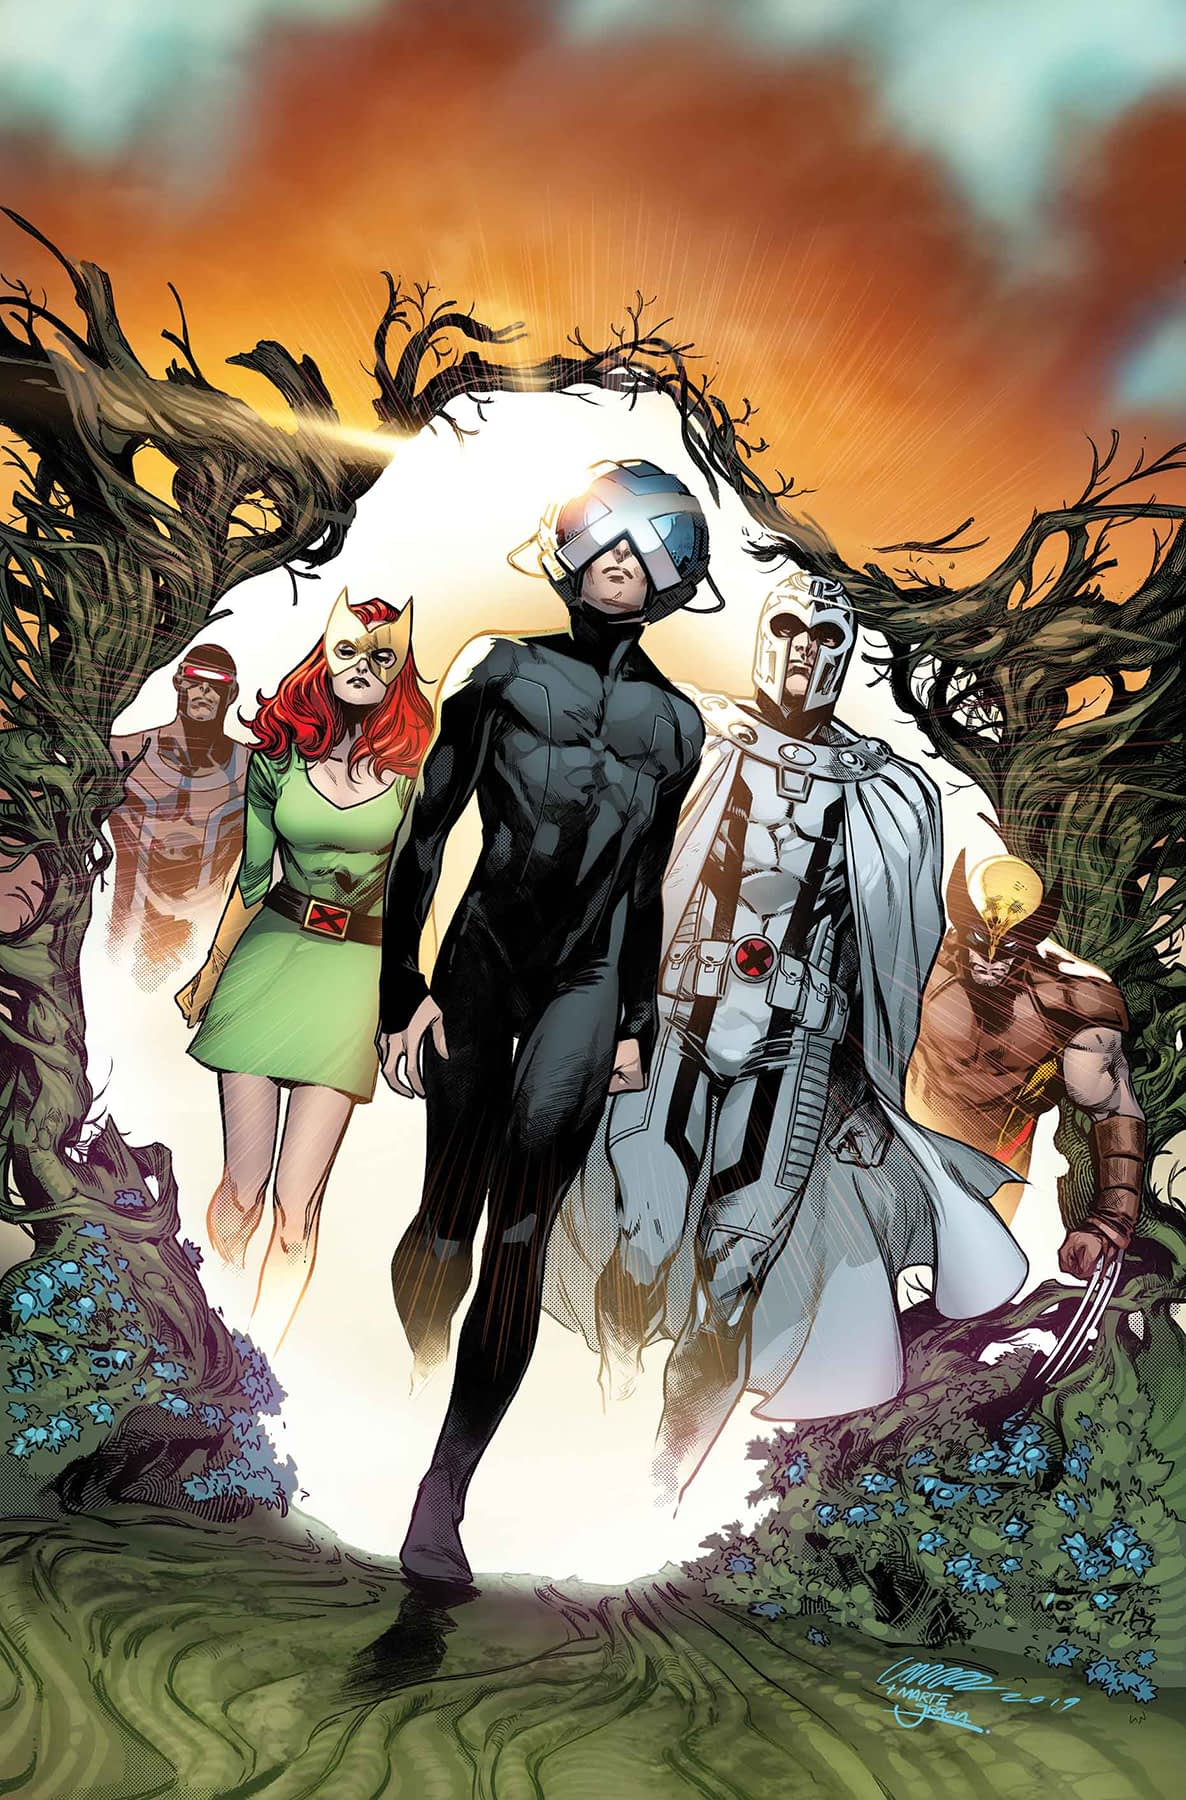 Yet Another Look Inside House of X and Power of X